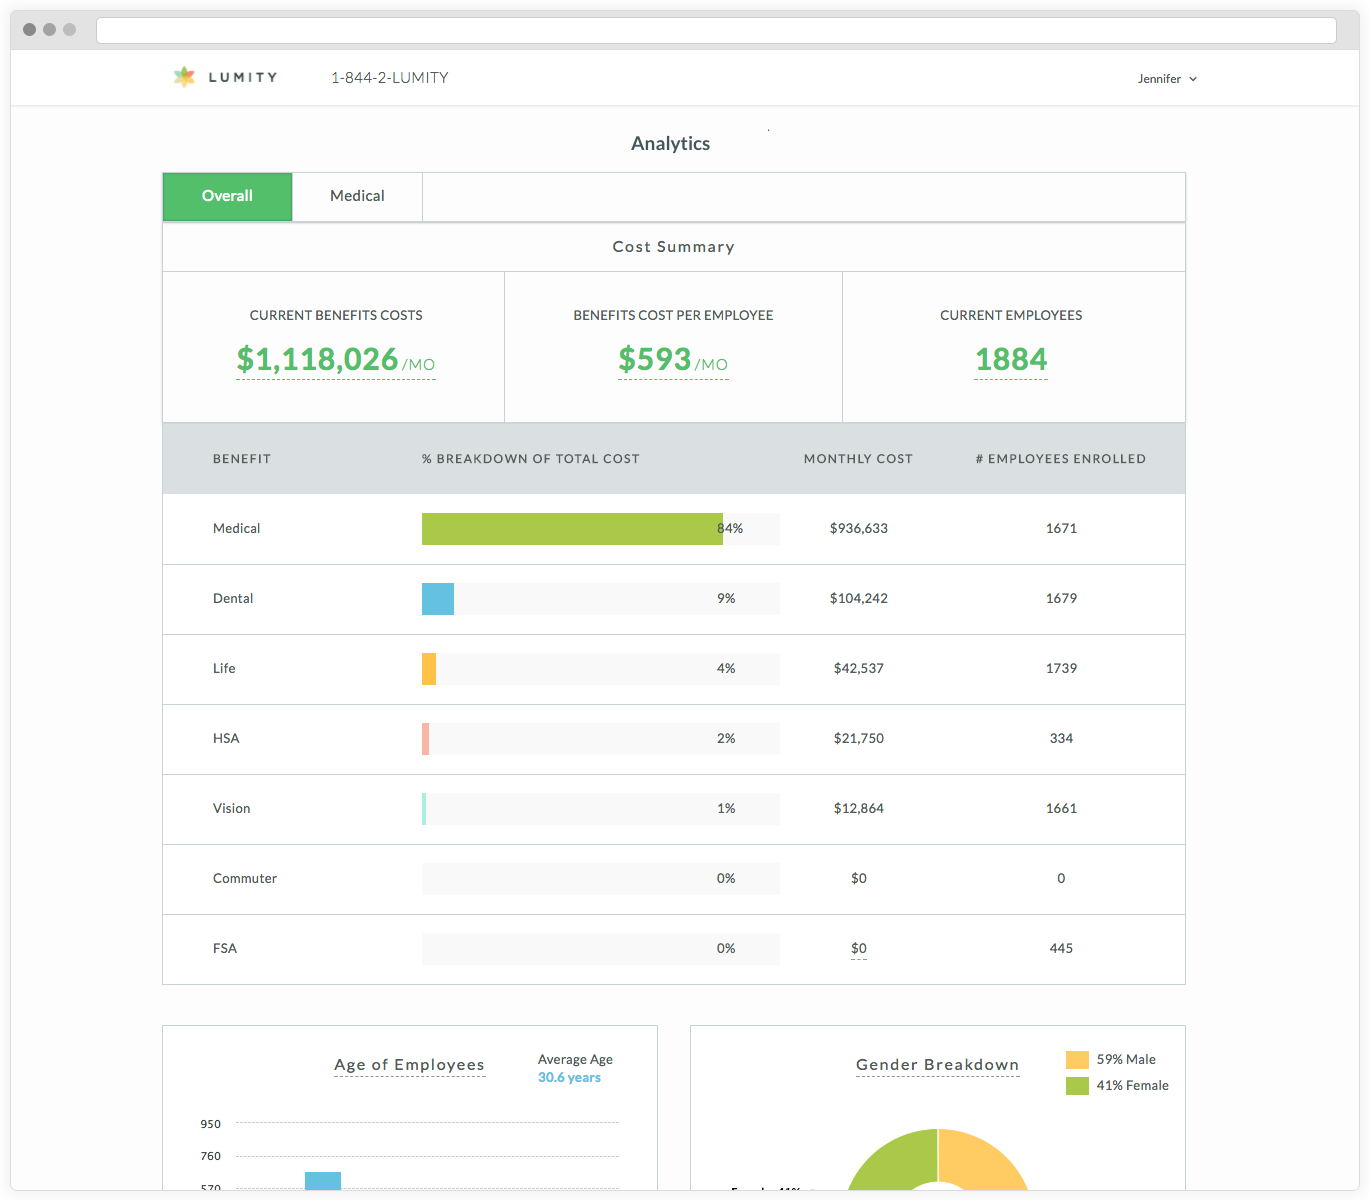 Lumity Benefits Administration & Enrollment Demo - Admin Dashboard: Analytics